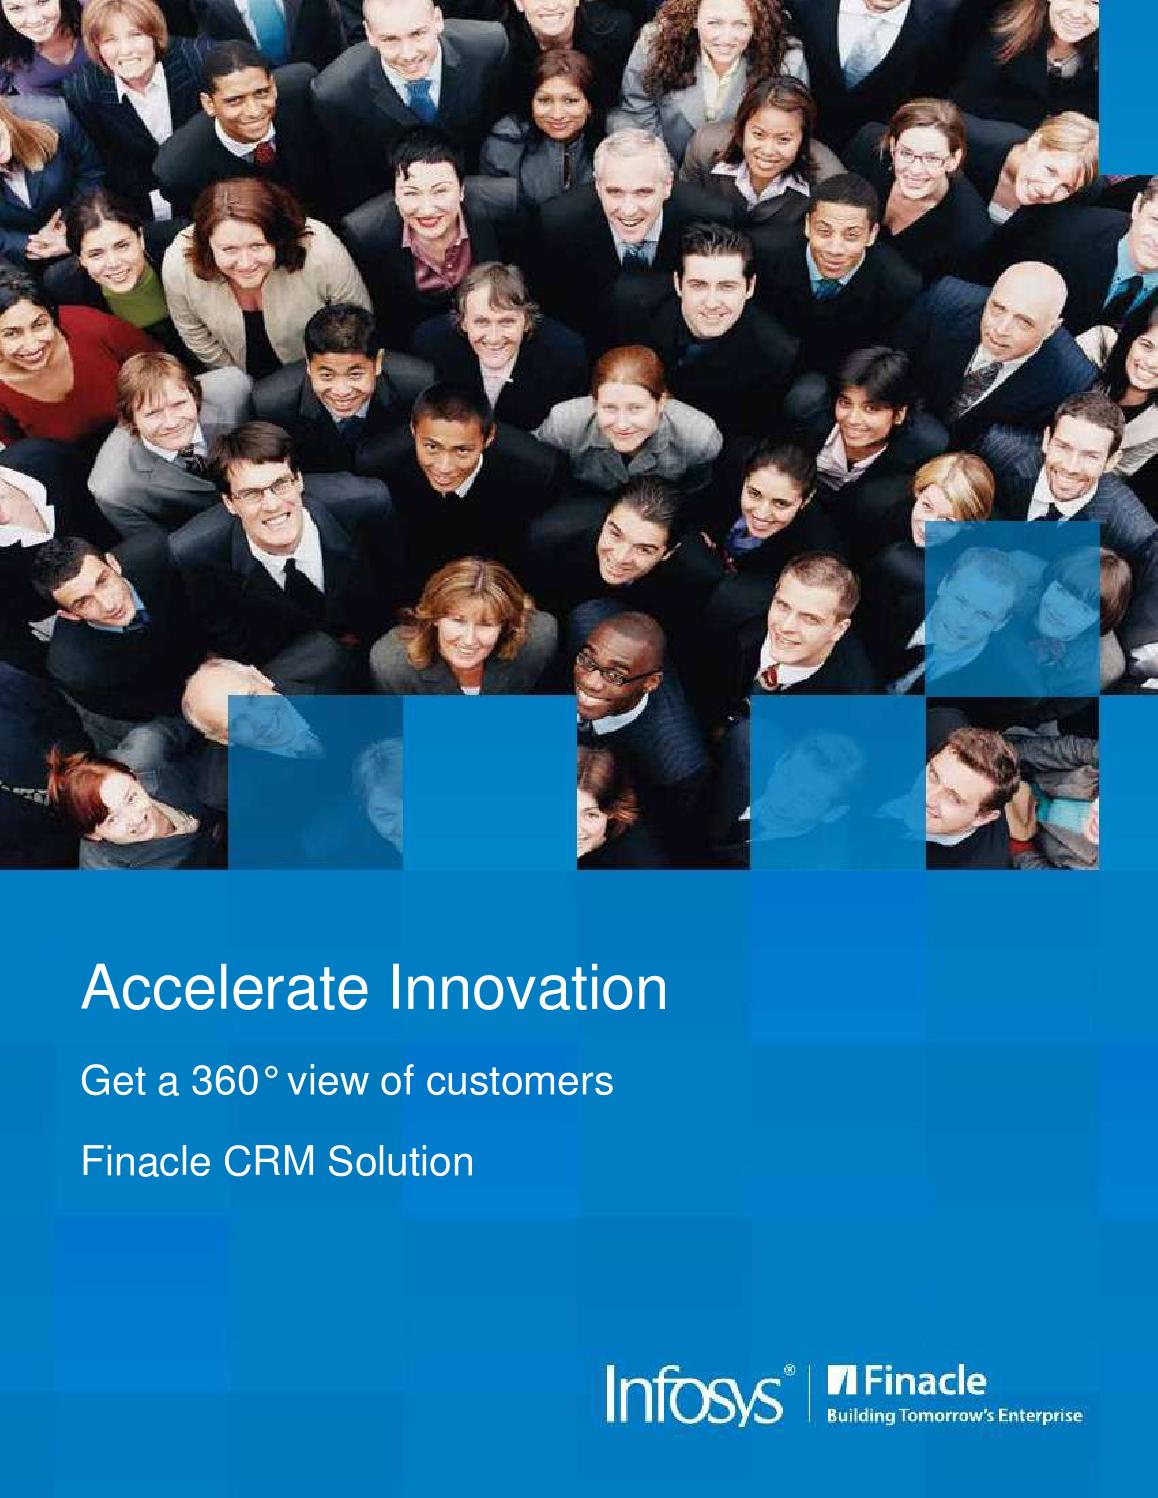 Finacle CRM - Everything a Financial Institution Needs by